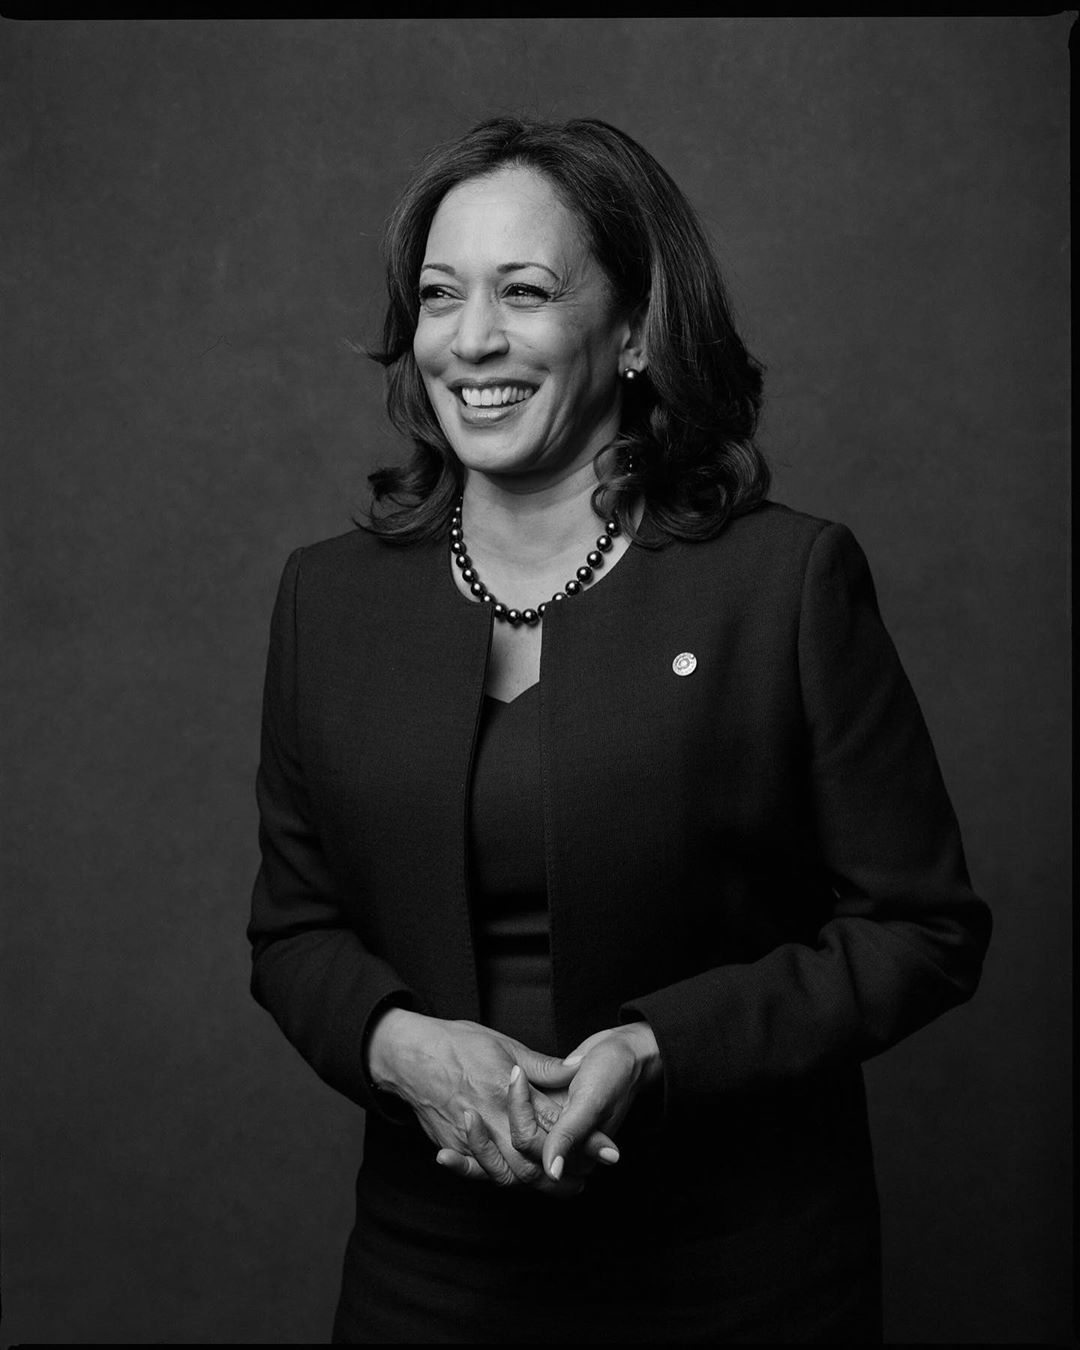 Celeste Sloman Photographs Vice Presidential Candidate Kamala Harris for the New York Times